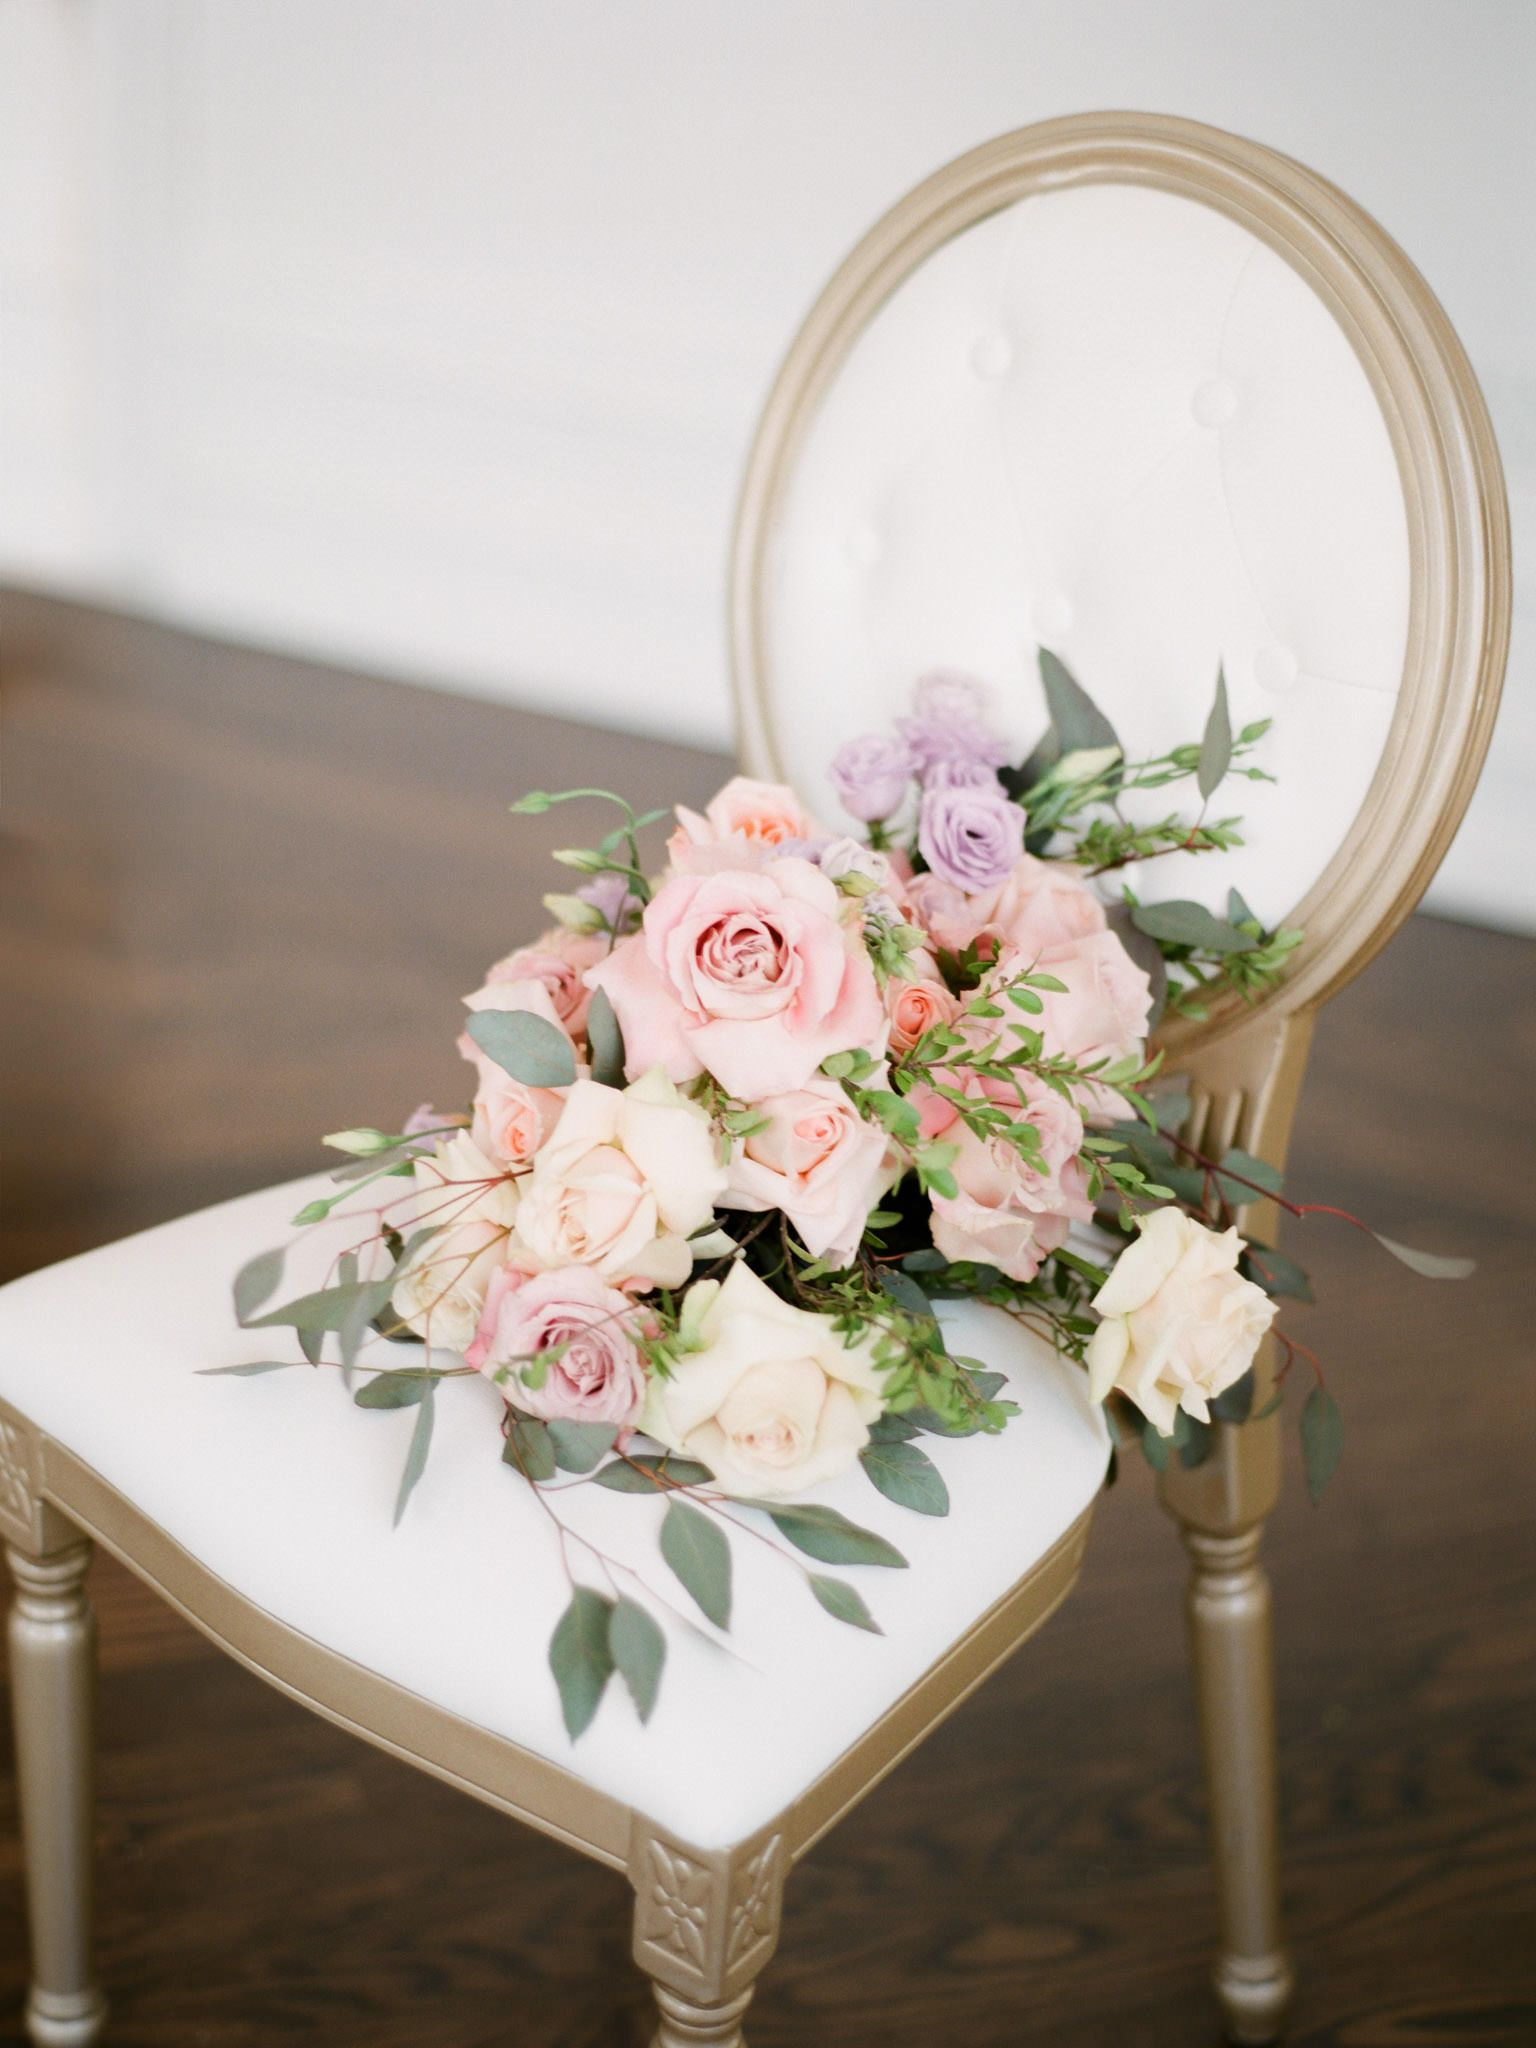 Natural flowy and luxe pastel bouquet toronto wedding florist natural flowy and luxe pastel bouquet toronto wedding florist peppermint co izmirmasajfo